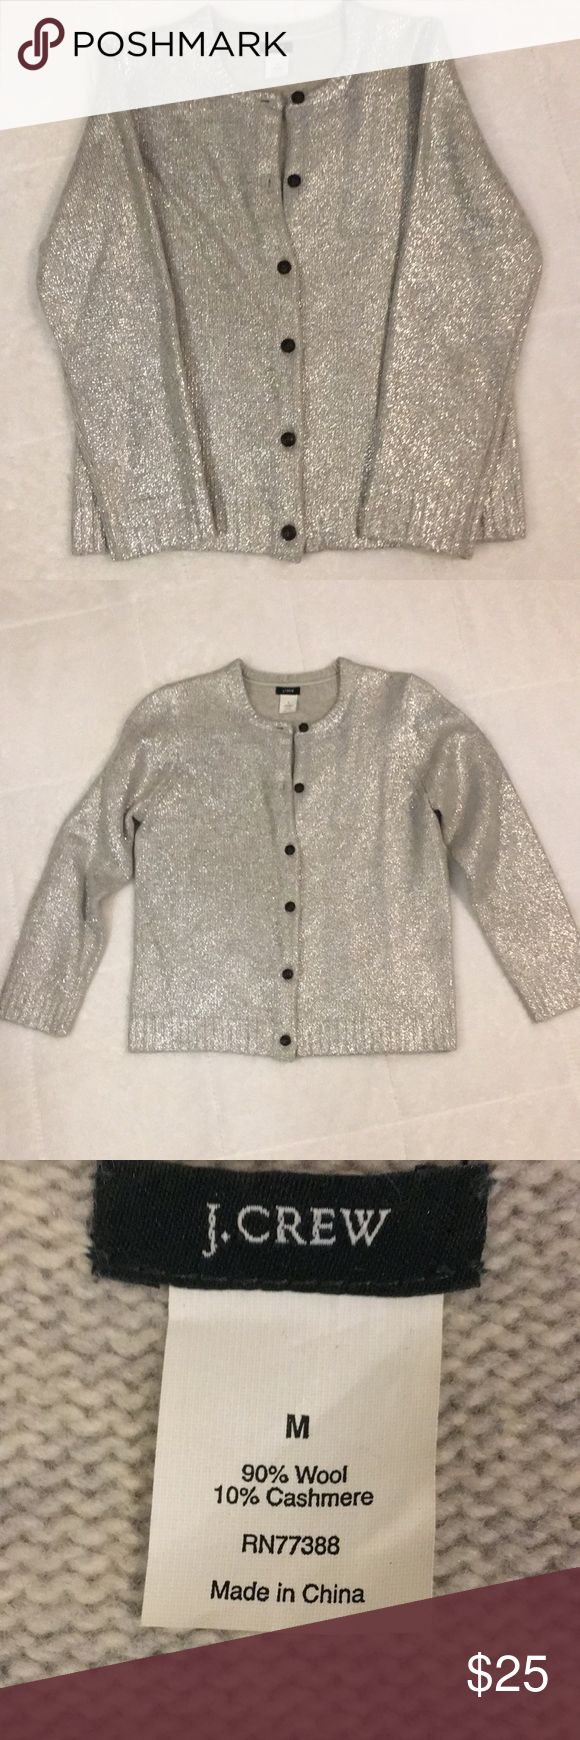 J. Crew Silver Cardigan Stunning silver cardigan. 90%wool 10% cashmere. Perfect condition. Beautiful for the holidays! J. Crew Sweaters Cardigans